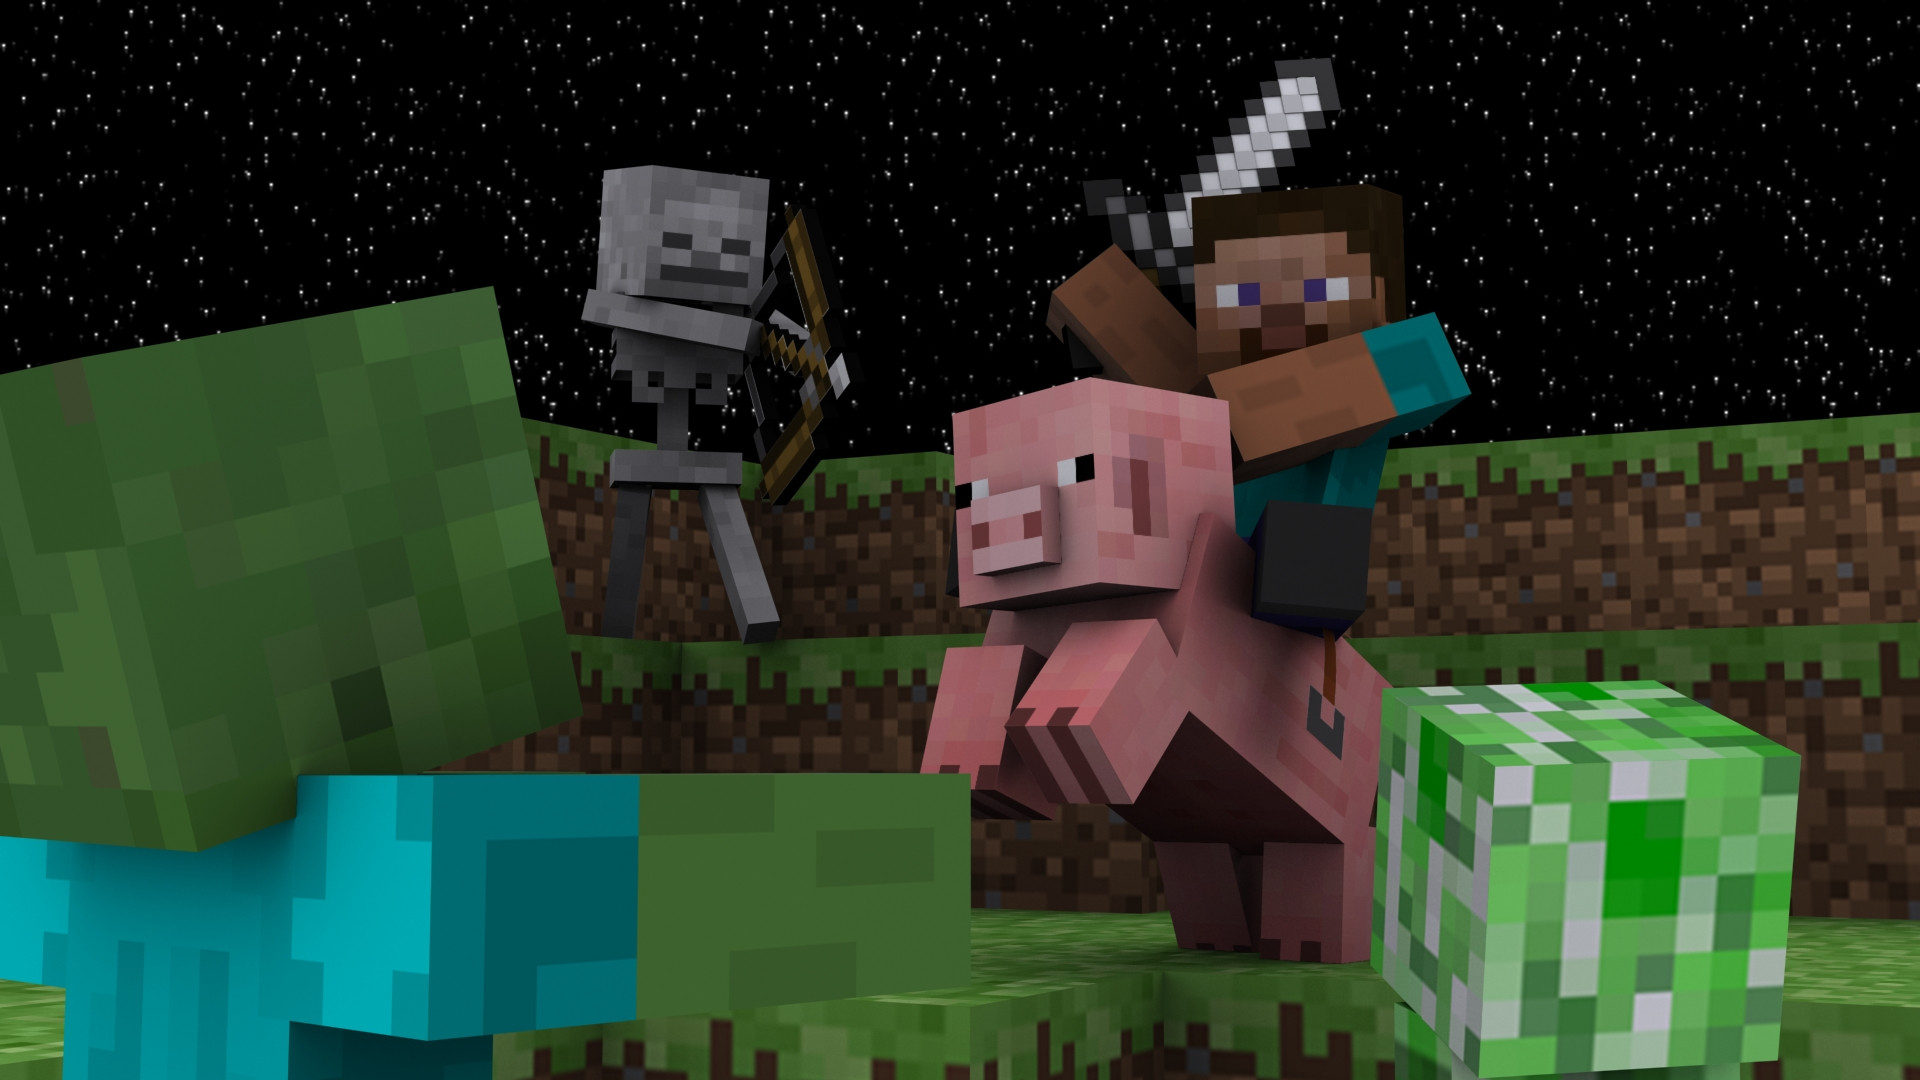 pc An epic Minecraft Wallpaper I made for my Digital Modeling class 1920x1080